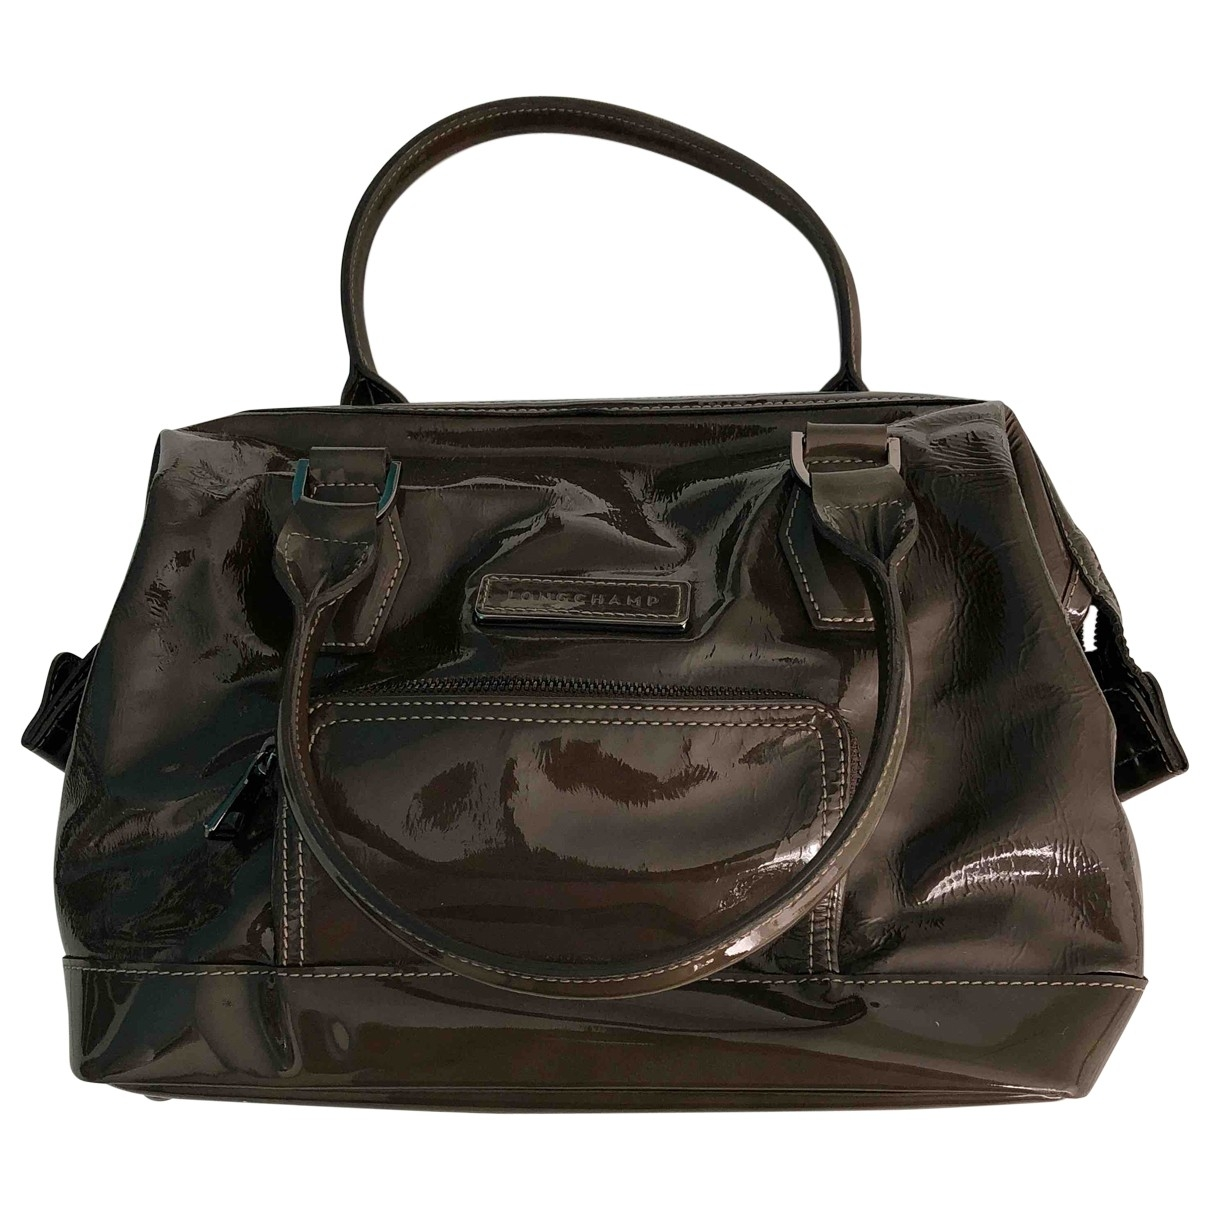 Longchamp Légende Brown Patent leather handbag for Women \N